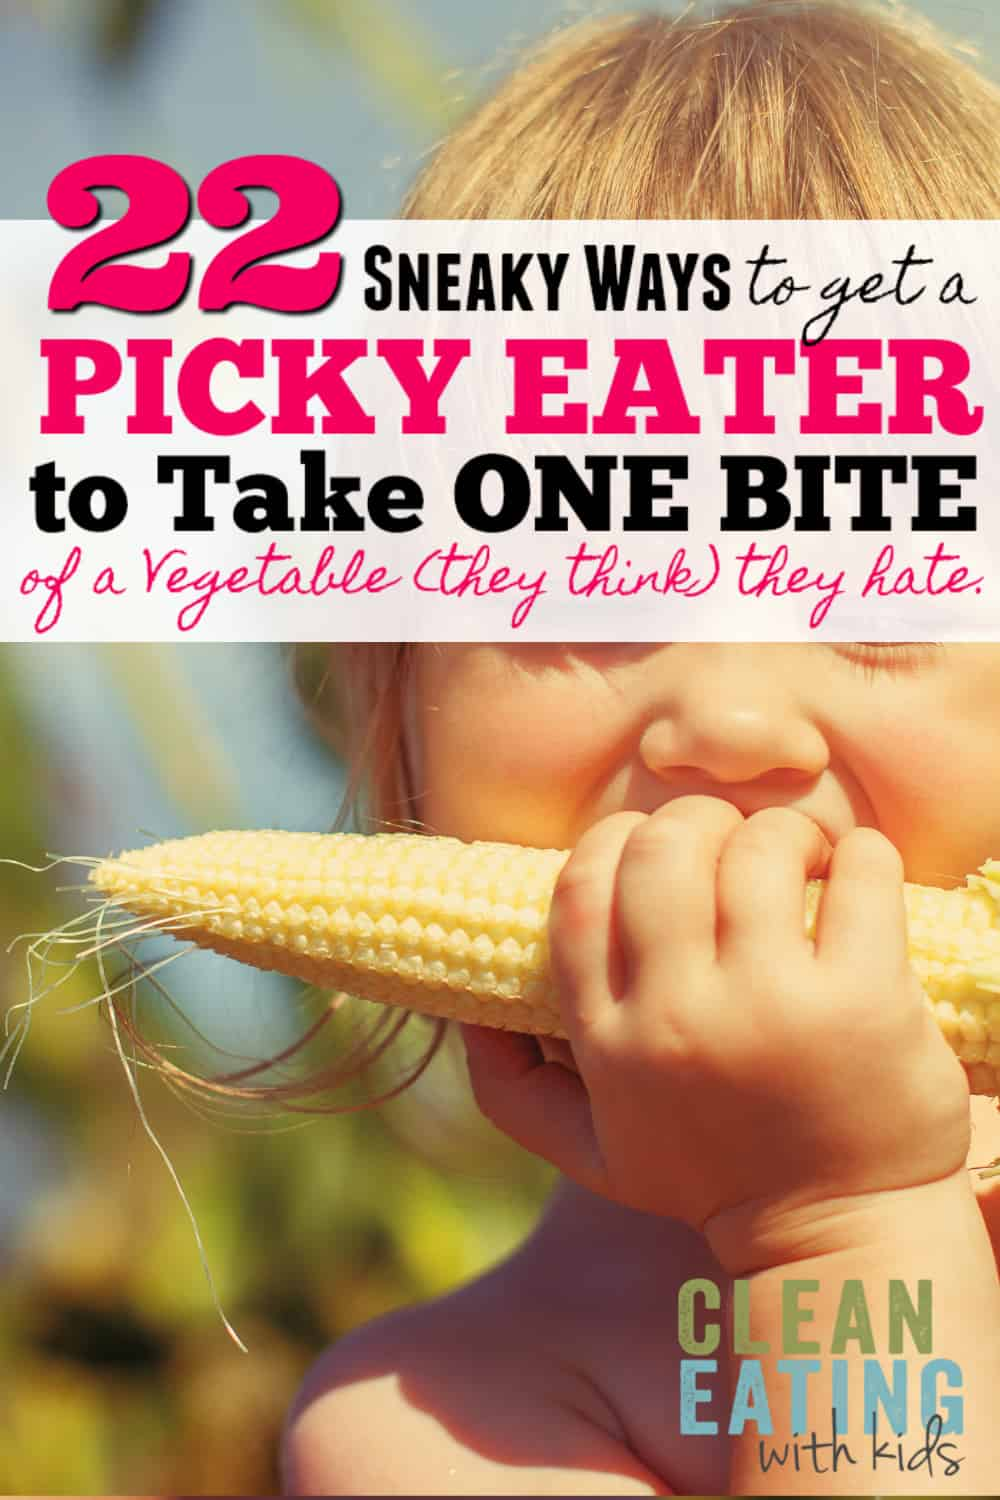 This is for Moms who have Picky Eaters. 22 Ways to get them to have that 'One Bite' because we all know how hard that can be:)